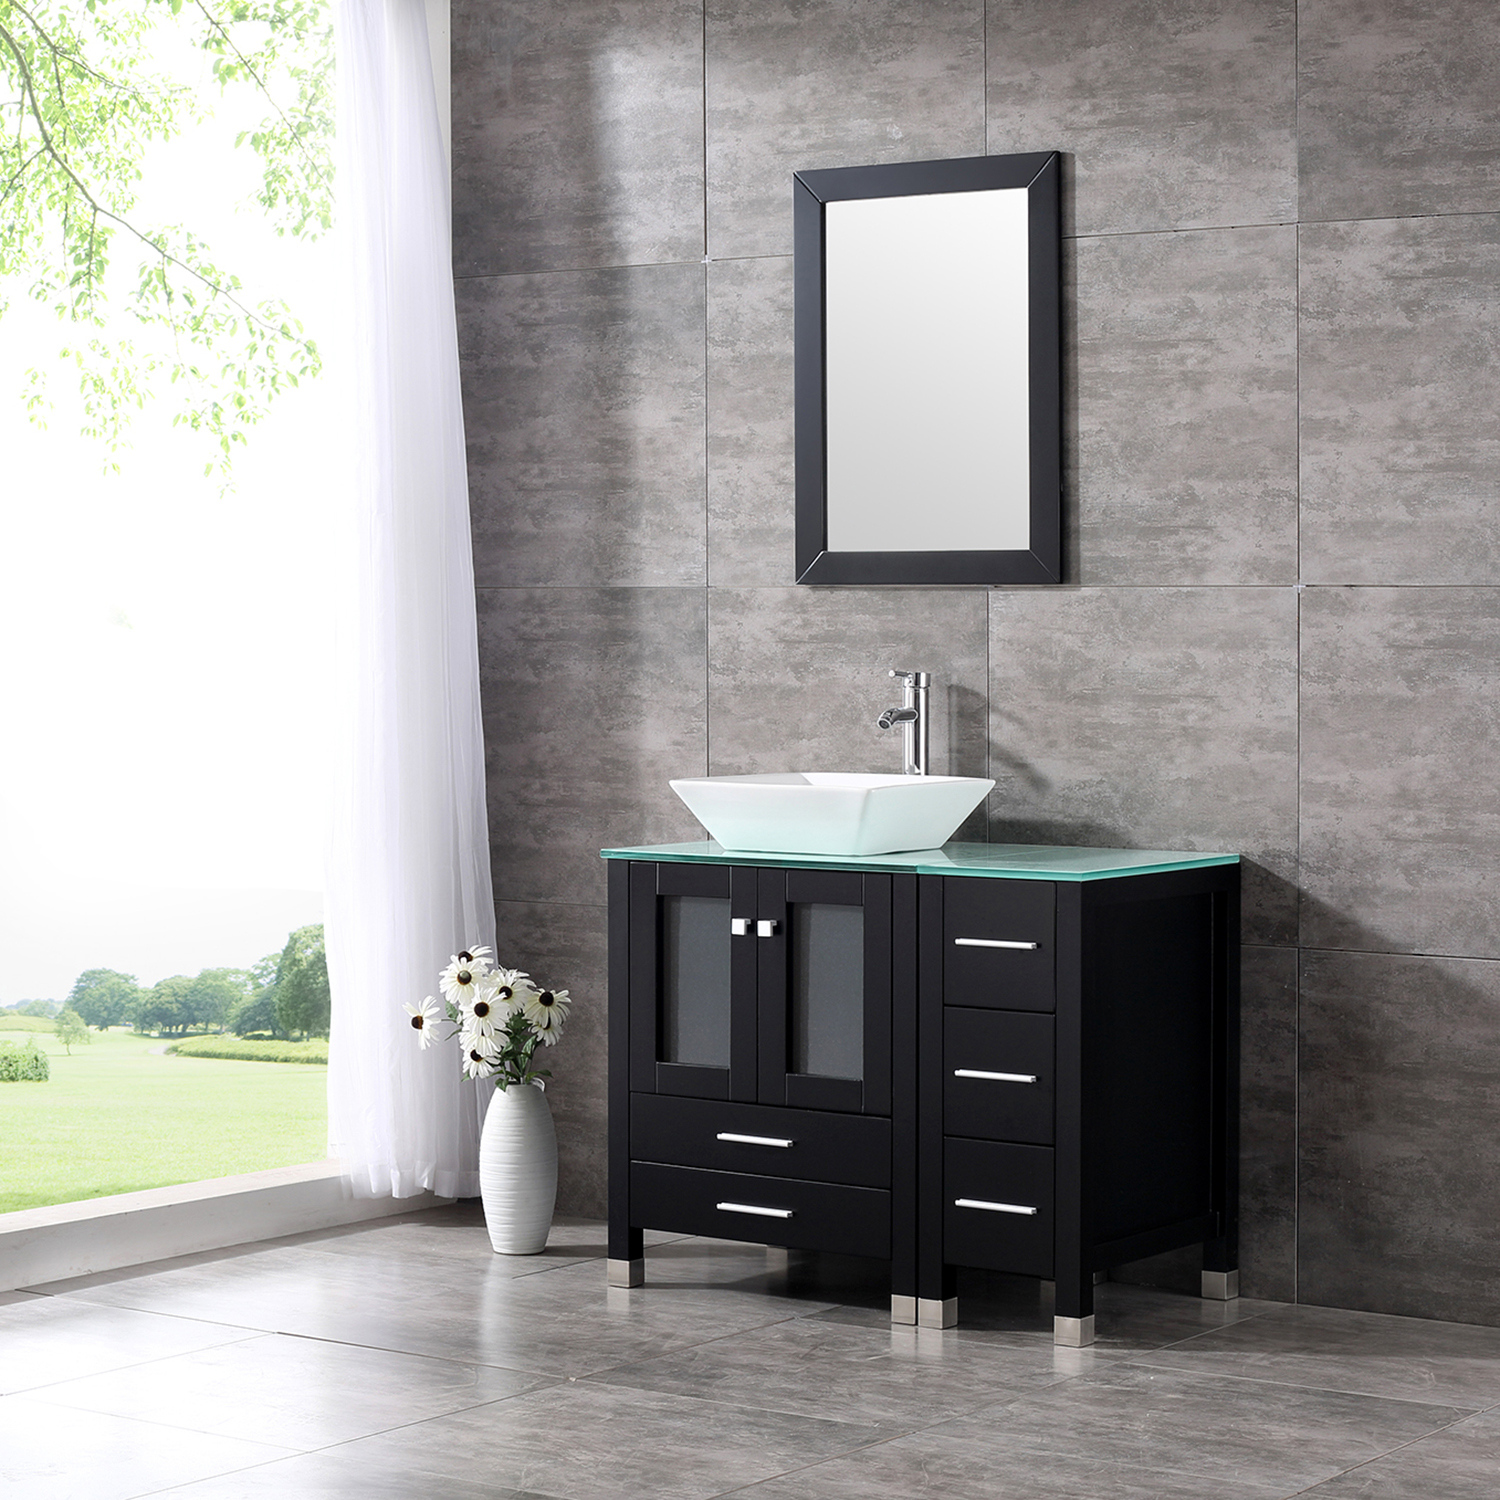 36  Modern Ceramic Vessel Sink Bowl Wood Bathroom Vanity Cabinet w/Mirror Faucet & 36